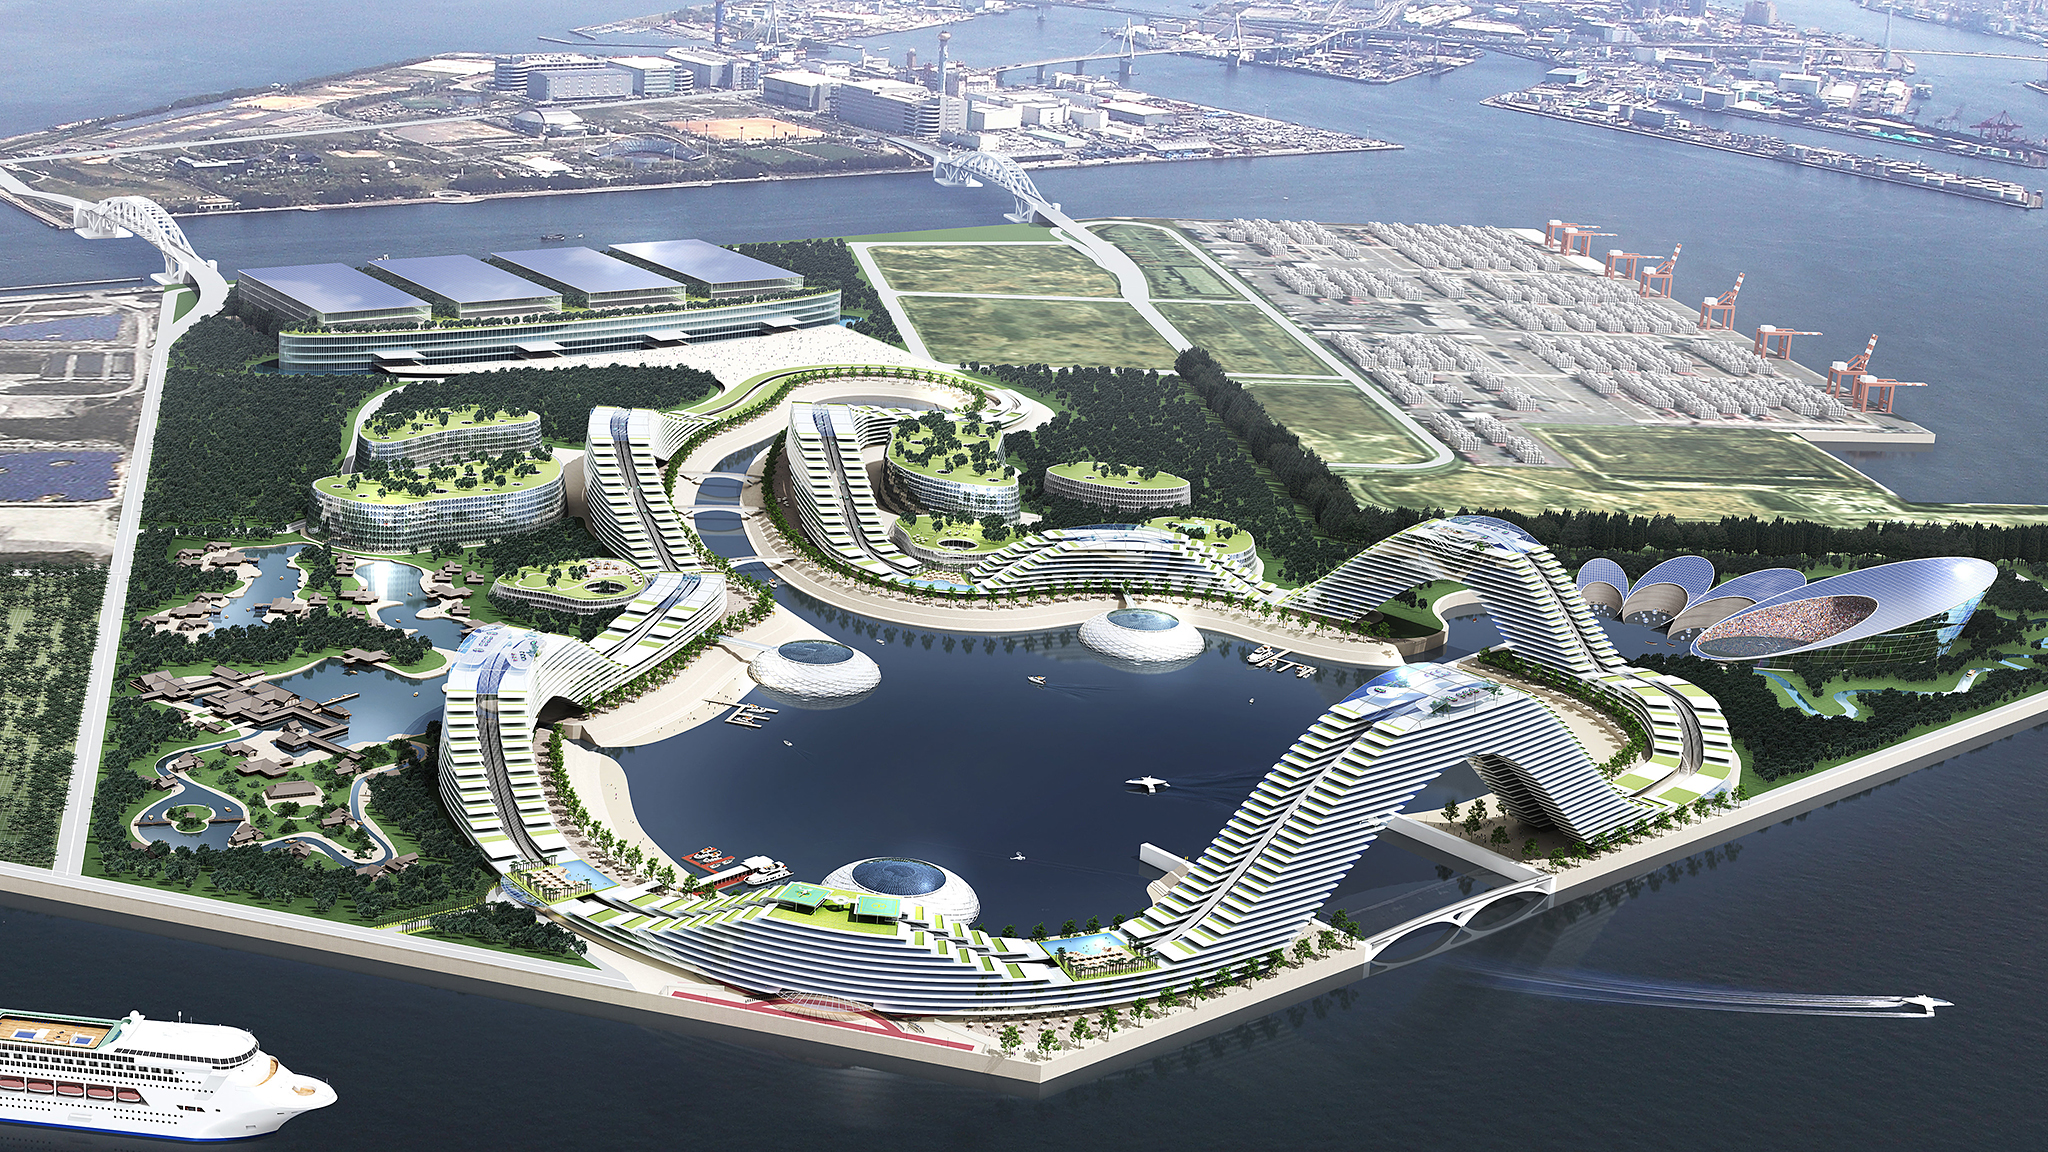 Osaka dreams big with 2025 World Expo and casino plans   Financial Times